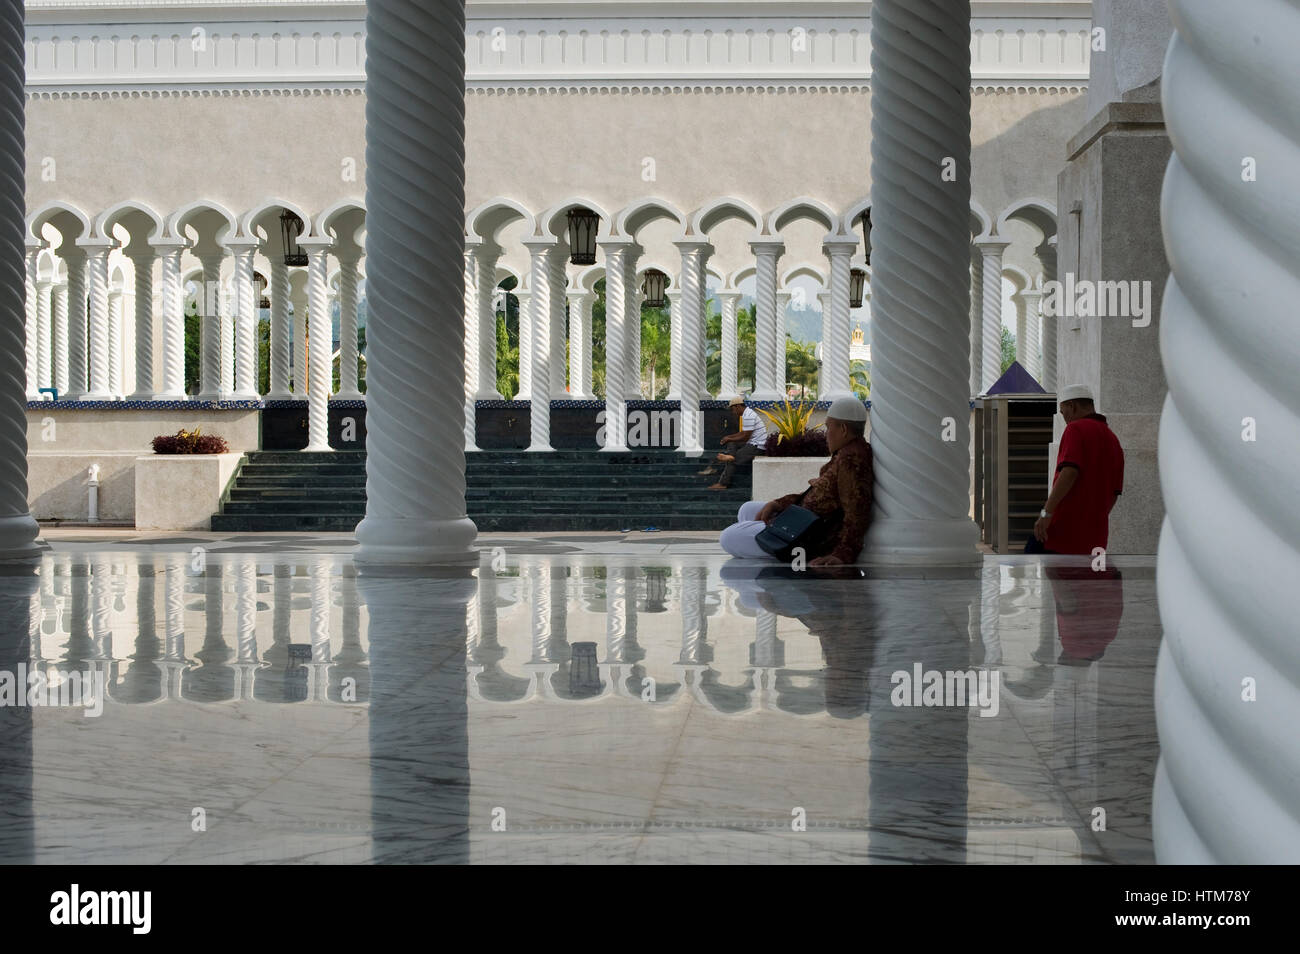 Visitors at the Sultan Omar Ali Saifuddien Mosque. The Mosque is located in Bandar Seri Begawan in the Sultanate - Stock Image